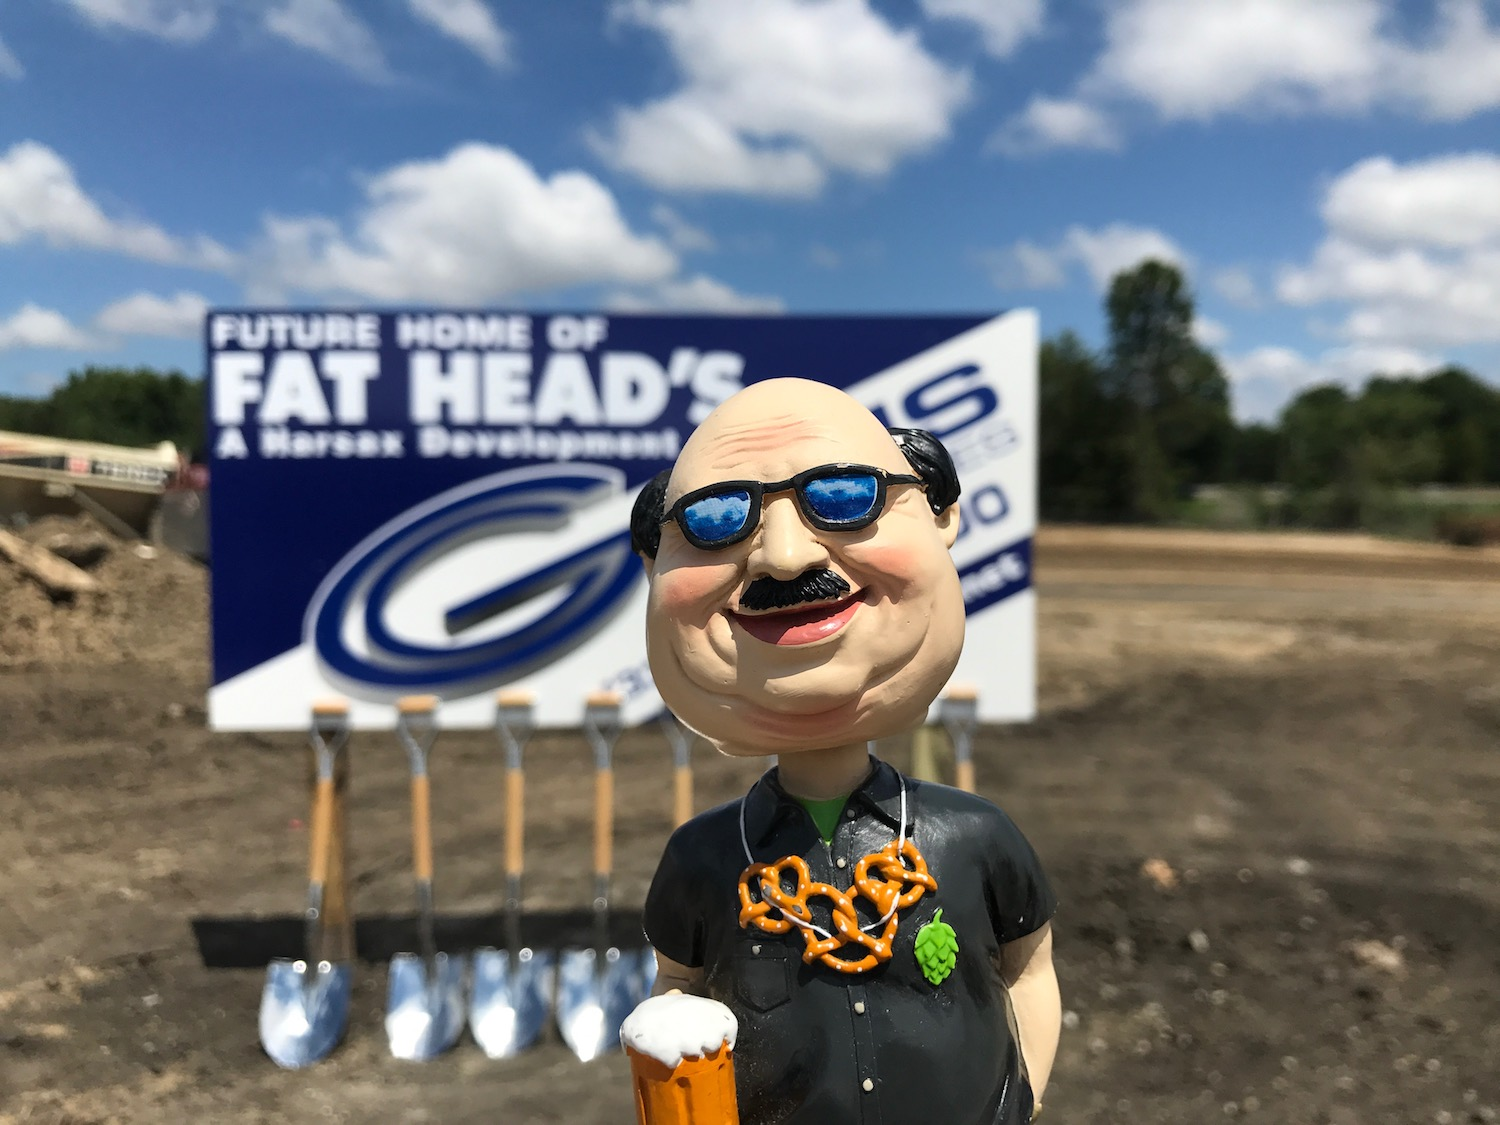 Fat Head's Brewery Ground Breaking